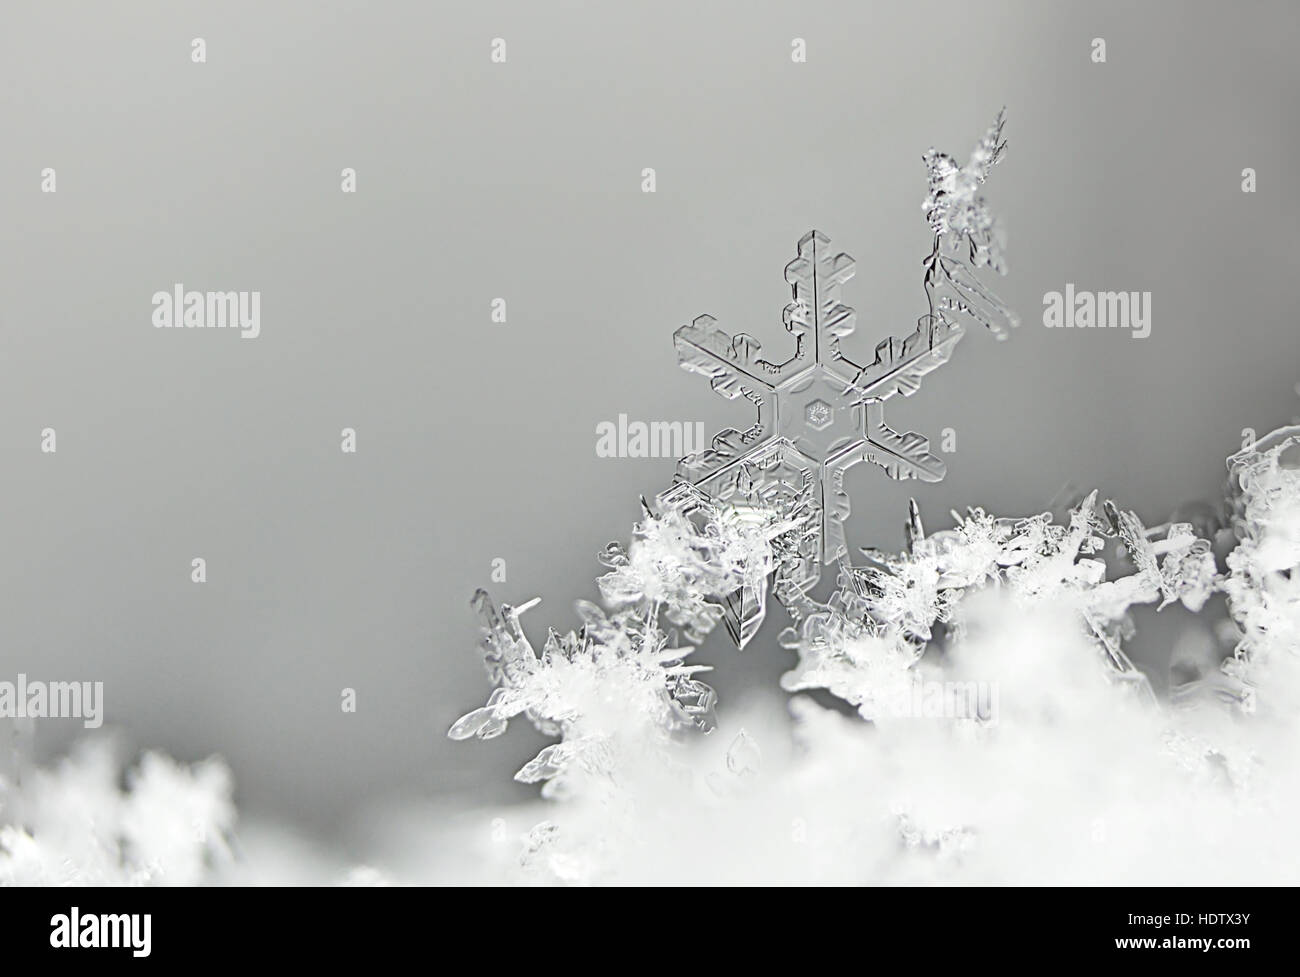 A small, small, transparent snowflake with a single scar on a small bird - Stock Image